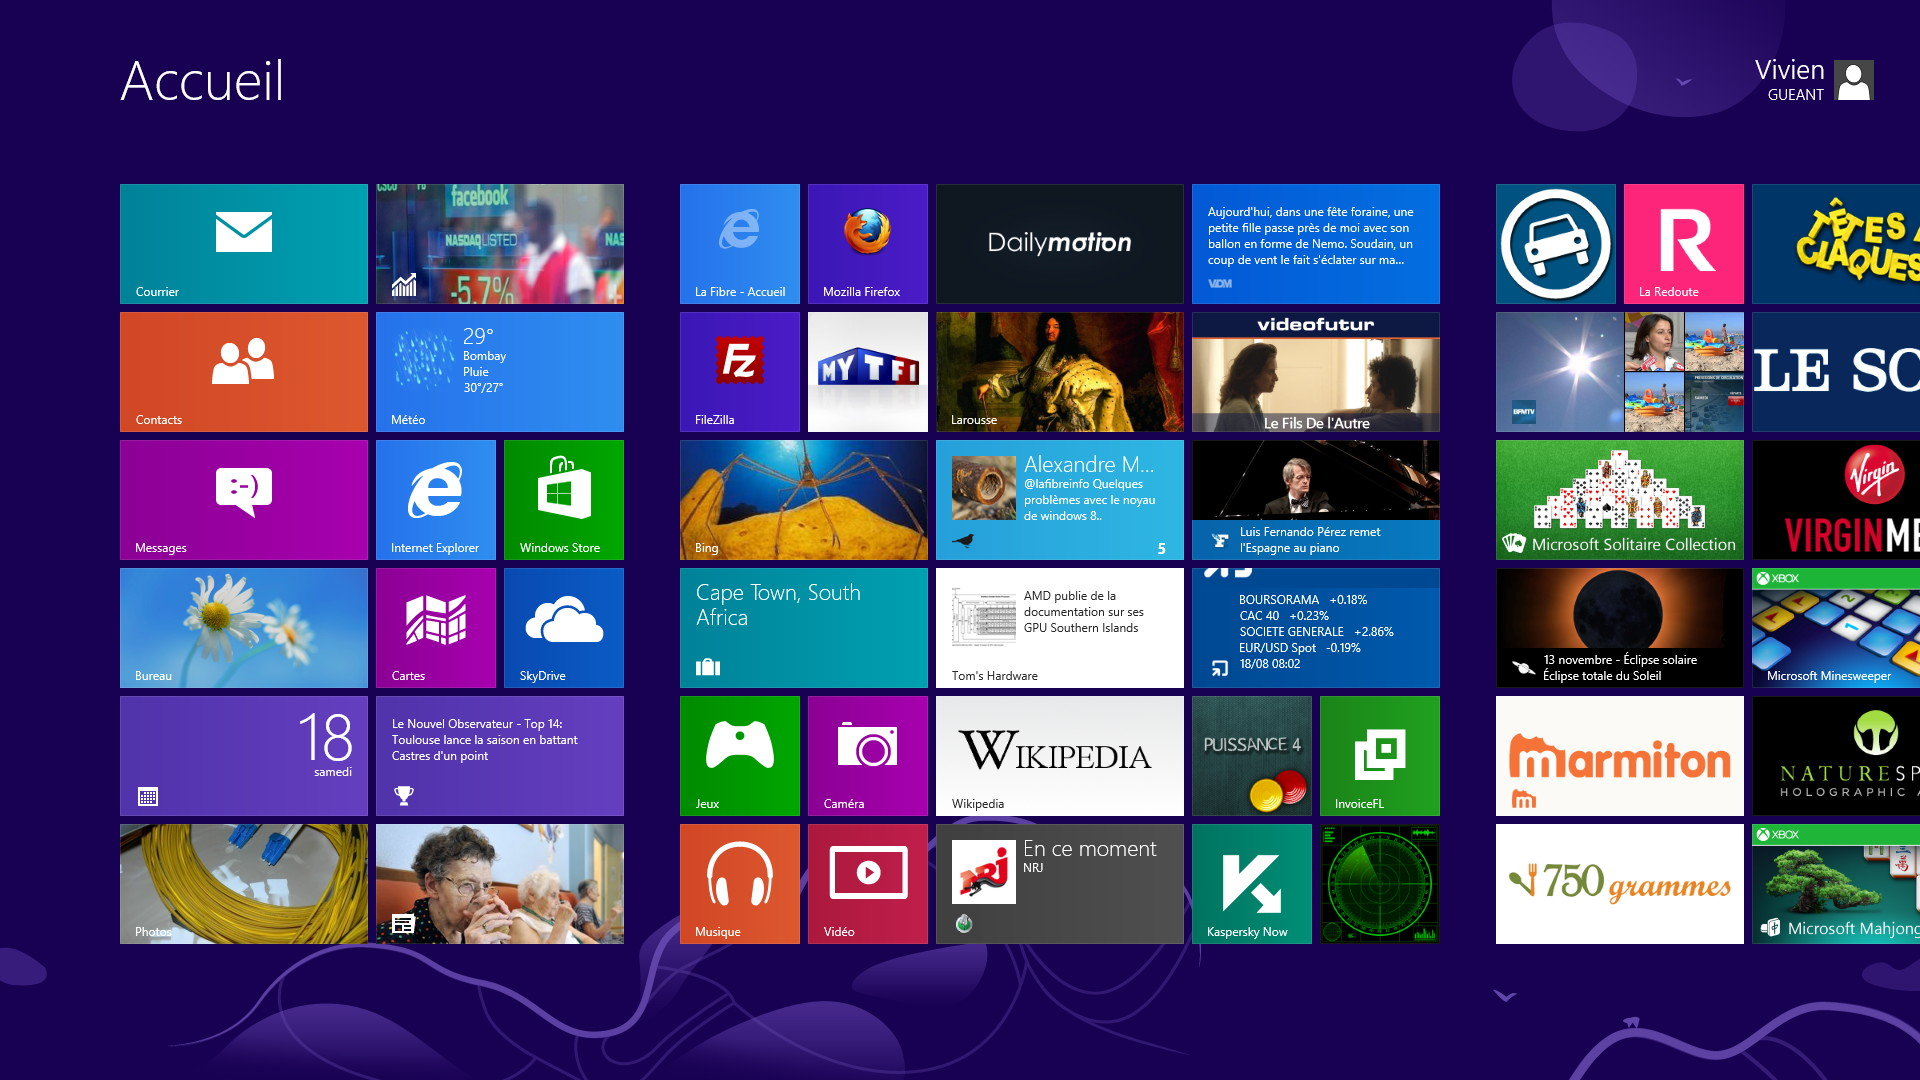 fenetre windows 8 images